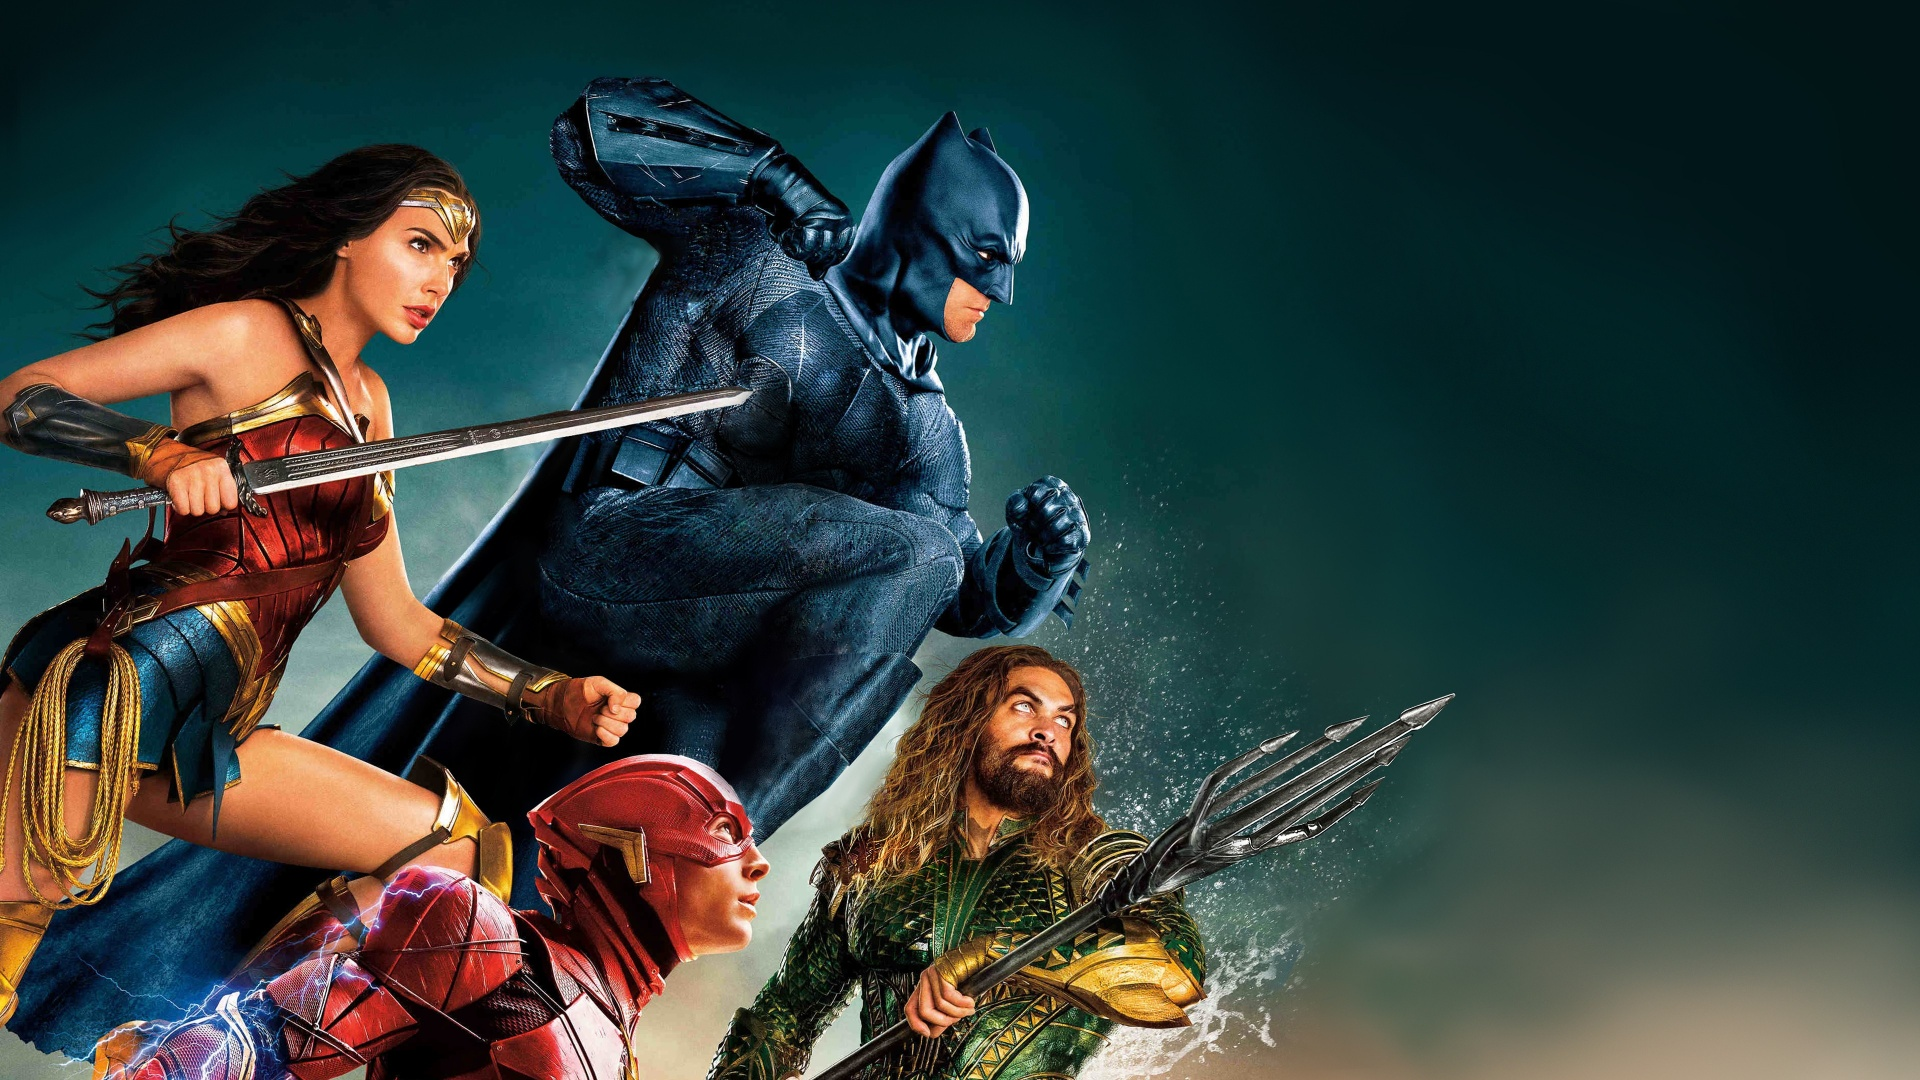 pictures of justice league